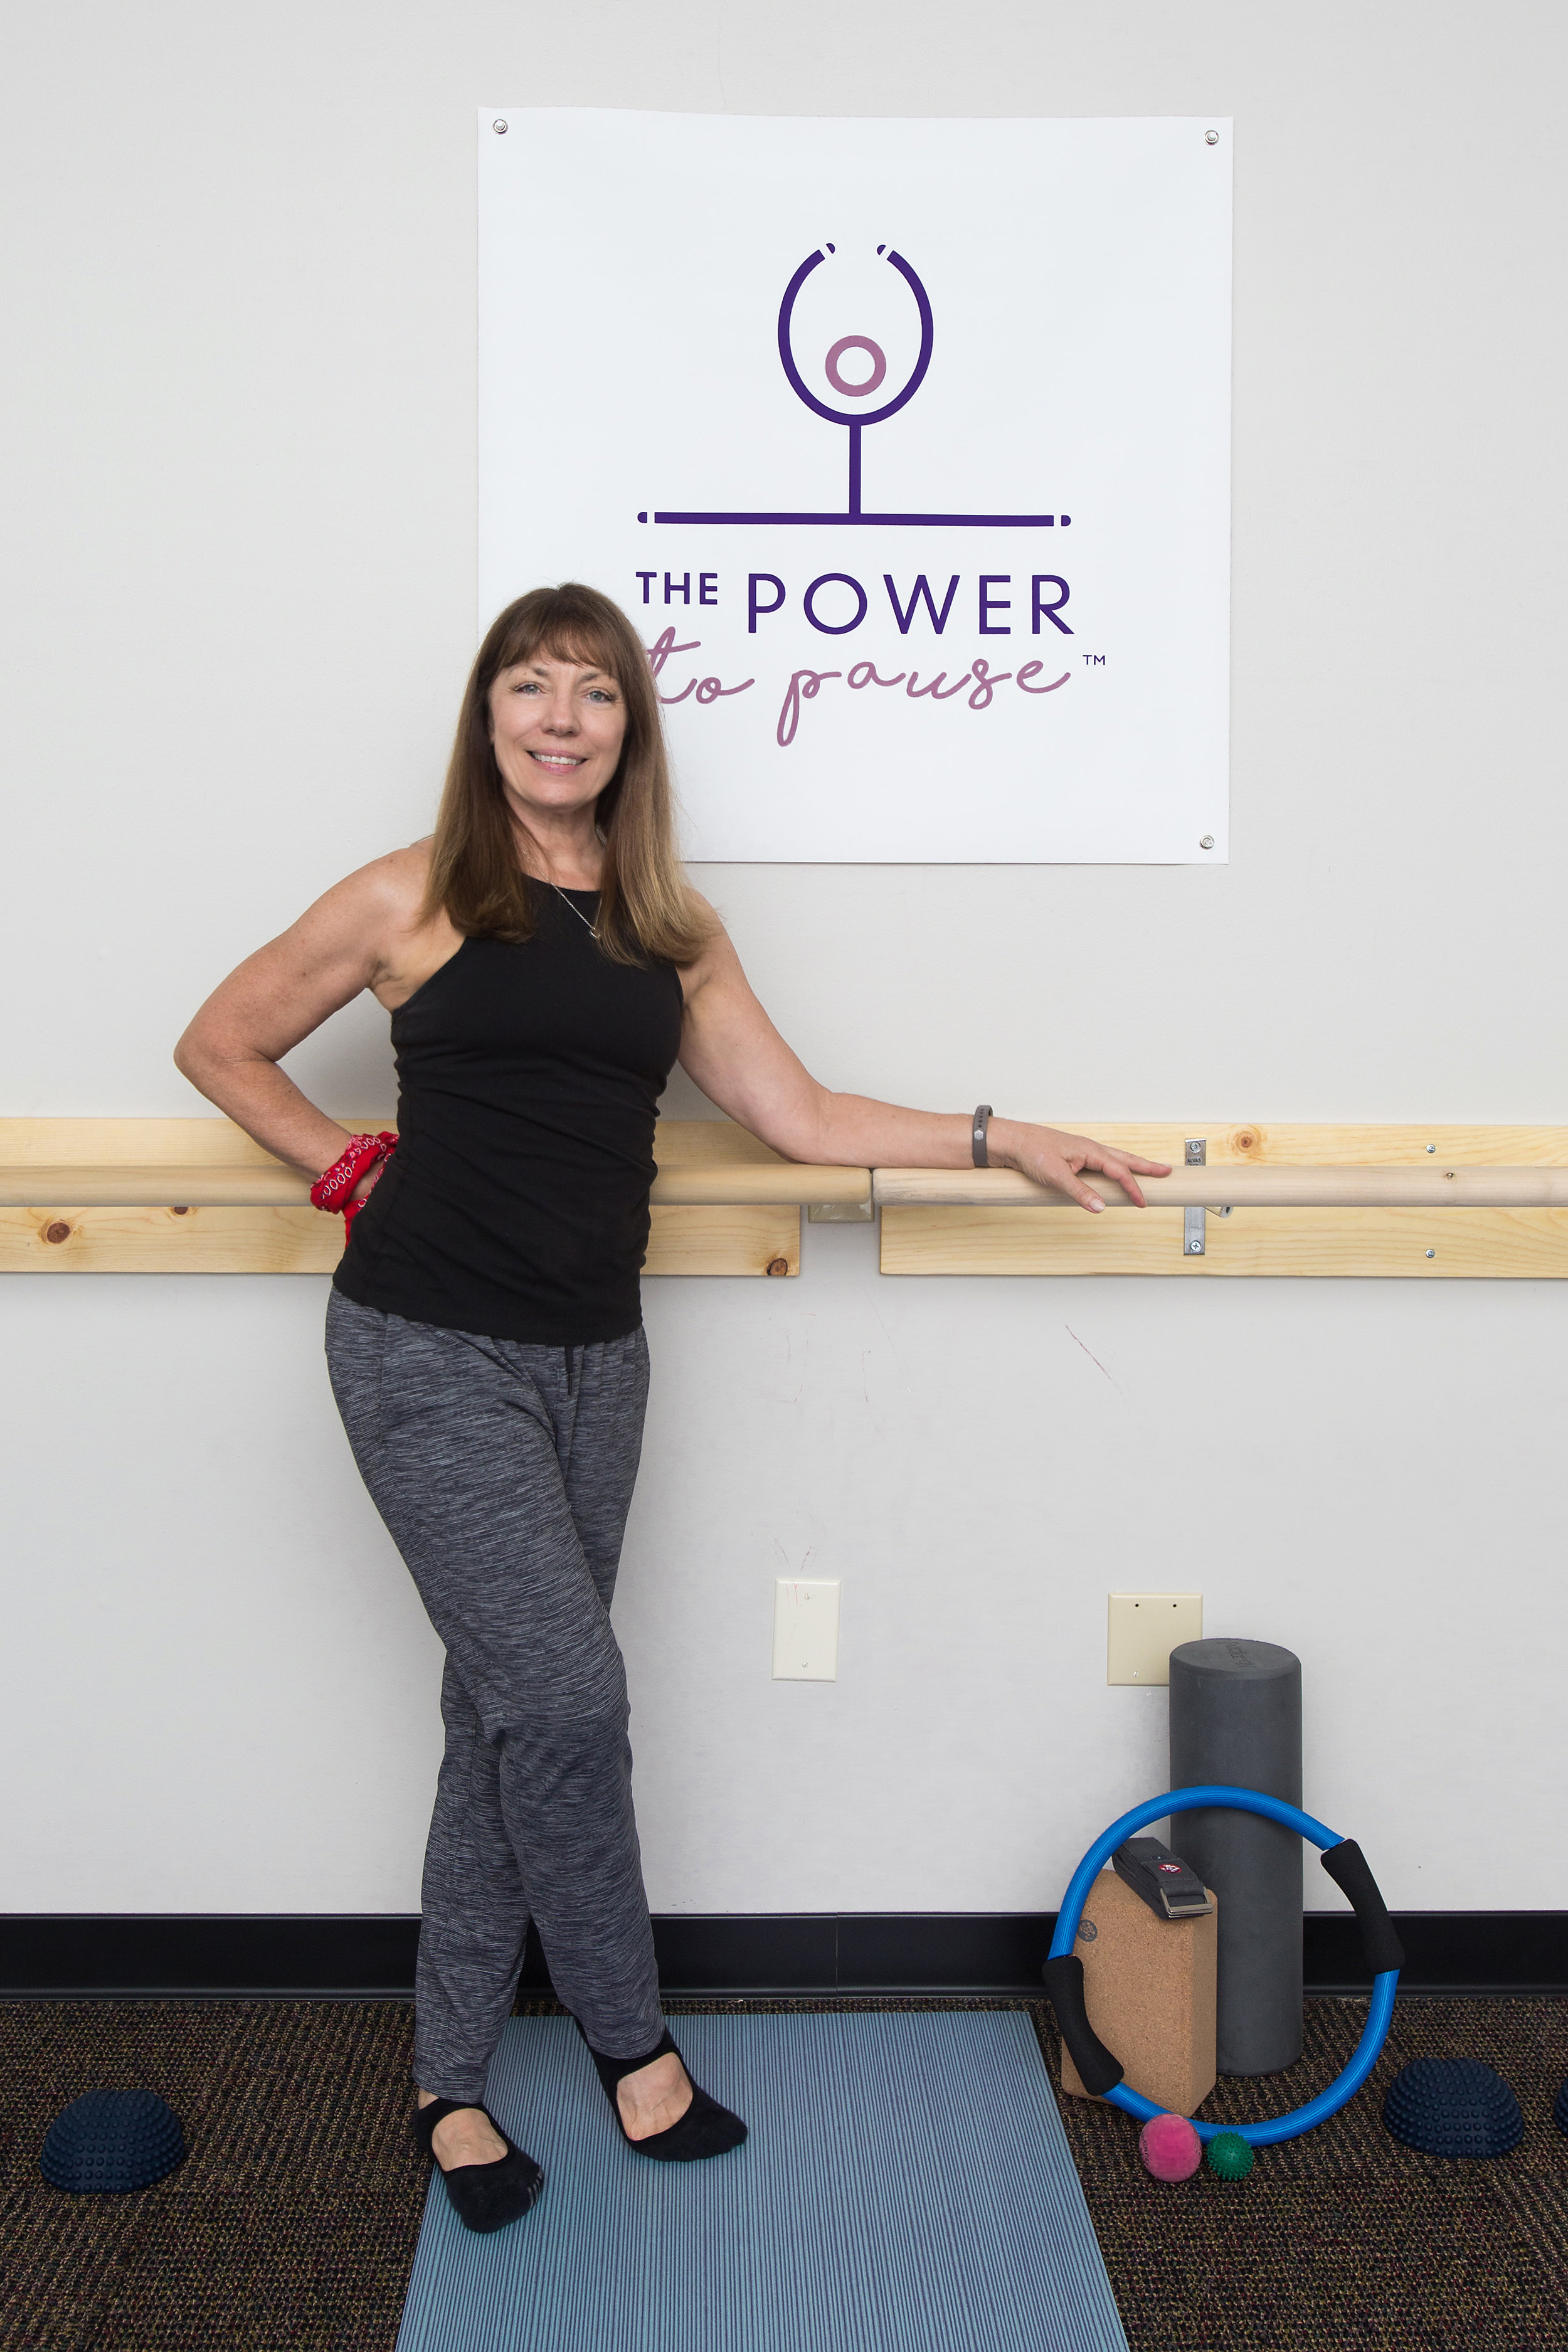 Meet Your Stretch Instructor - My name is Connie C. Williams, and I'm a 40-year fitness industry leader and Assisted Stretching advocate.I co-created step/bench aerobics in the late 1980s, producing videos and traveling the world training instructors, corporate clients, and personal trainers—including Princess Diana's personal trainer!I can't wait to share my passion for Assisted Stretching with you through The Power to Pause's online resources and wellness education!